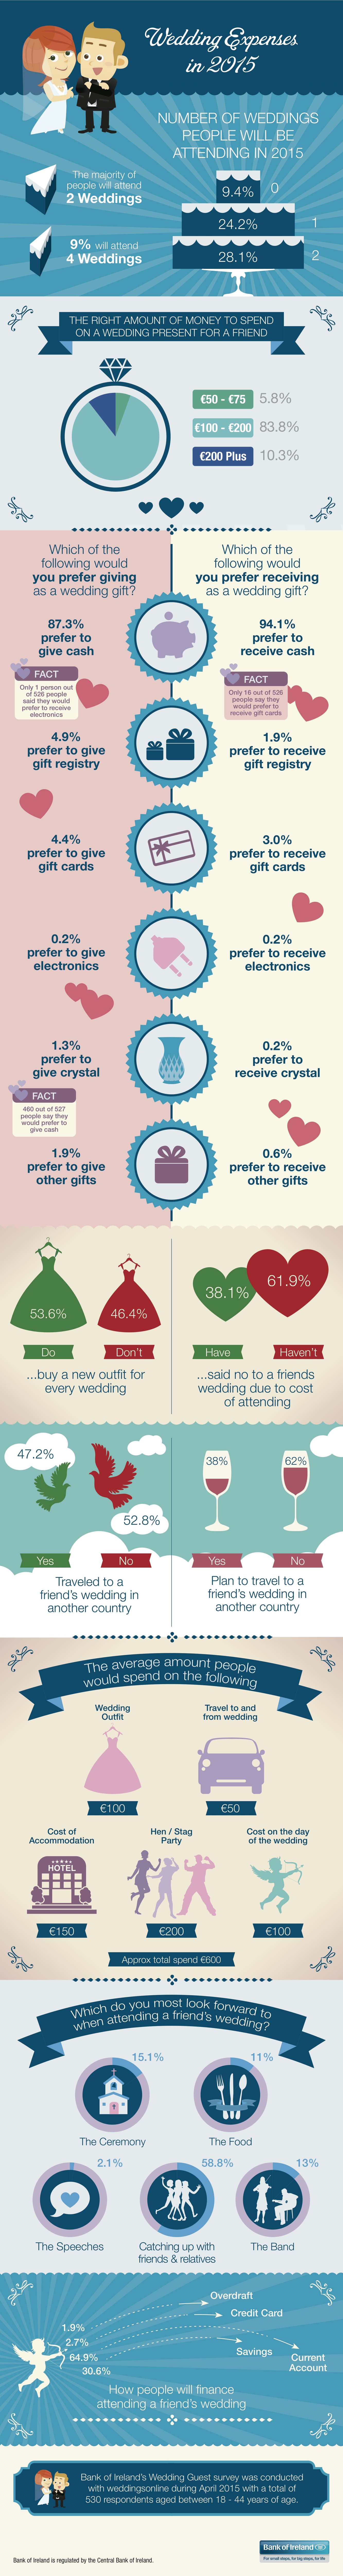 Wedding guest sruvey infographic copy